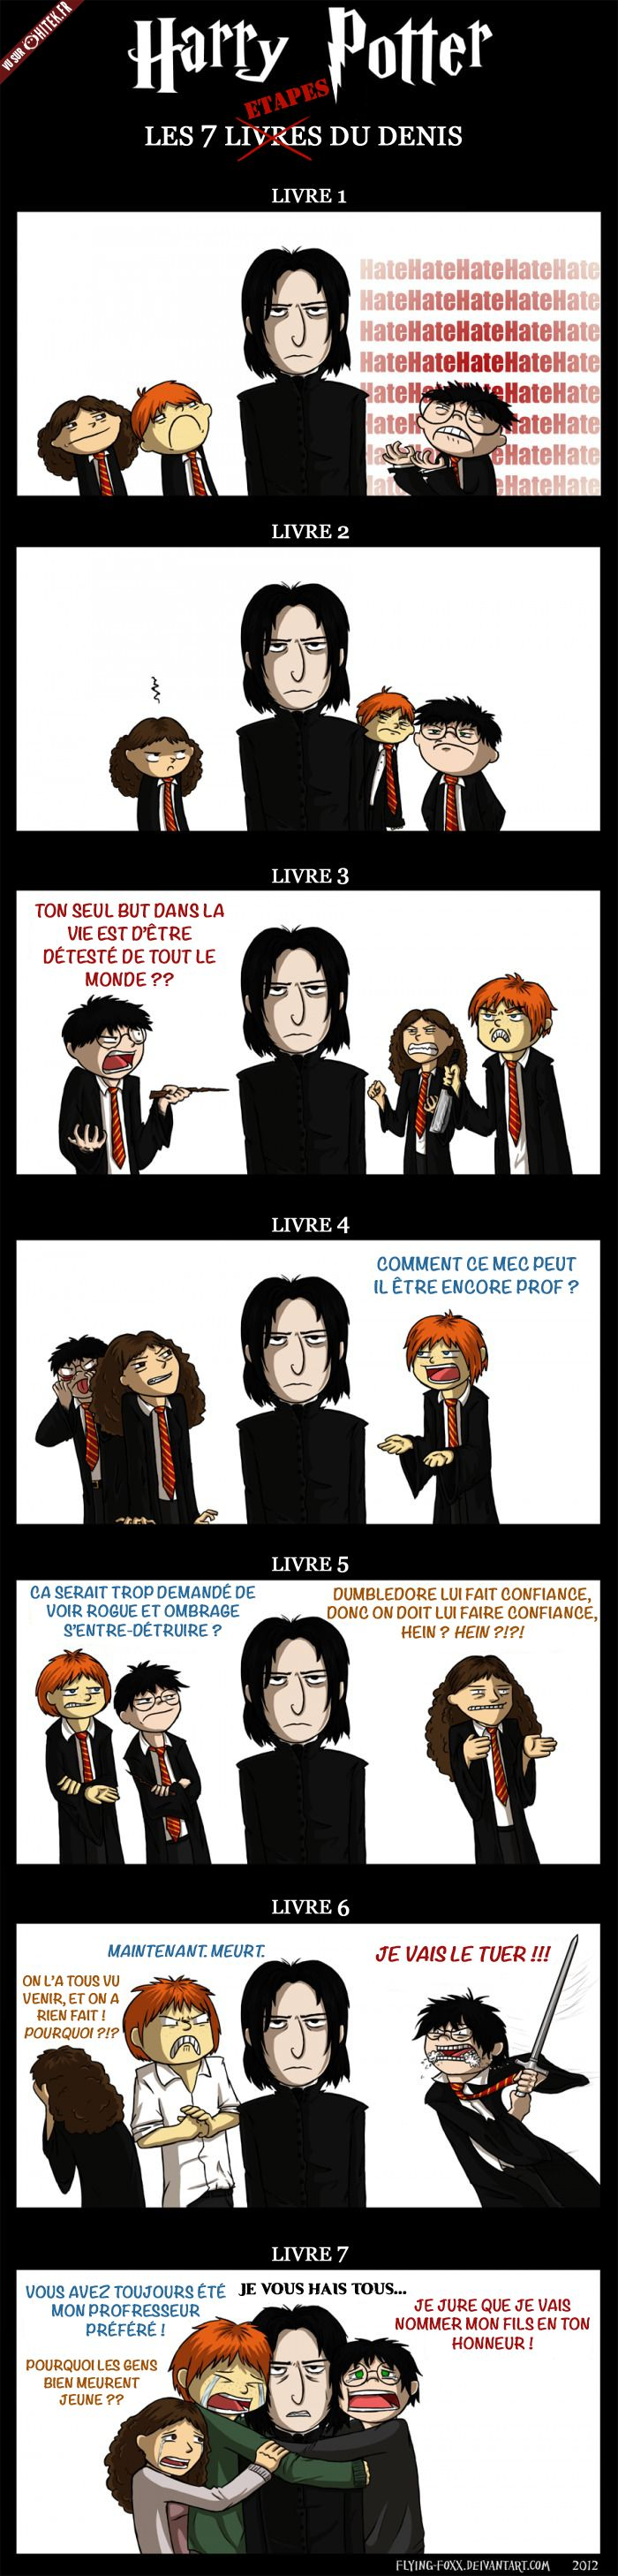 Ce que pense Harry Potter de Severus Rogue dans les 7 tomes de la saga Harry Potter !